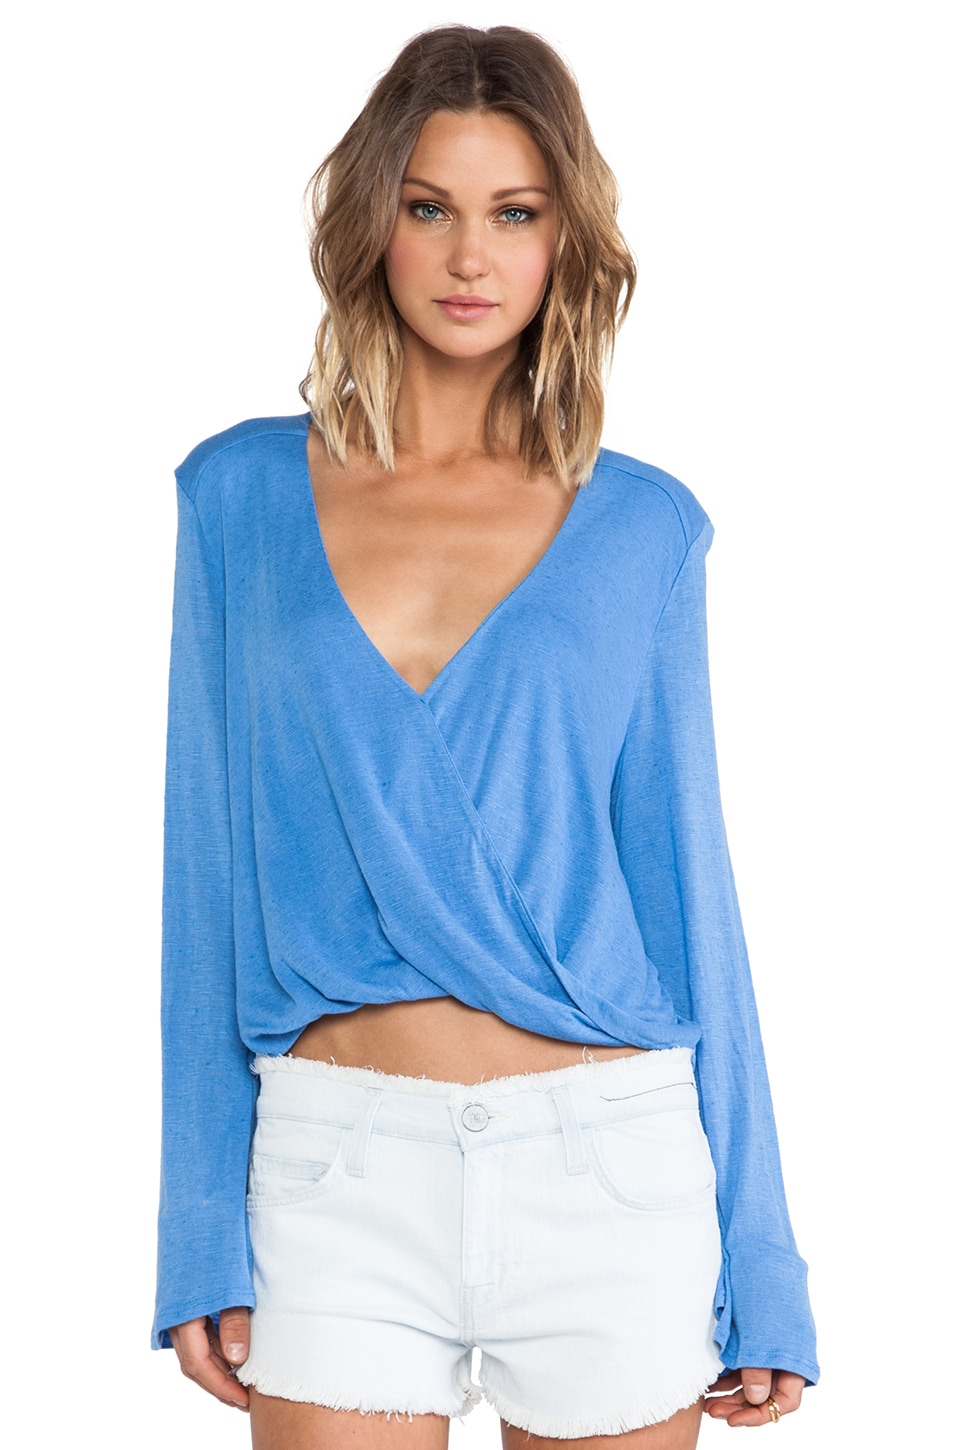 Blue Life Hayley Top in Capri Blue